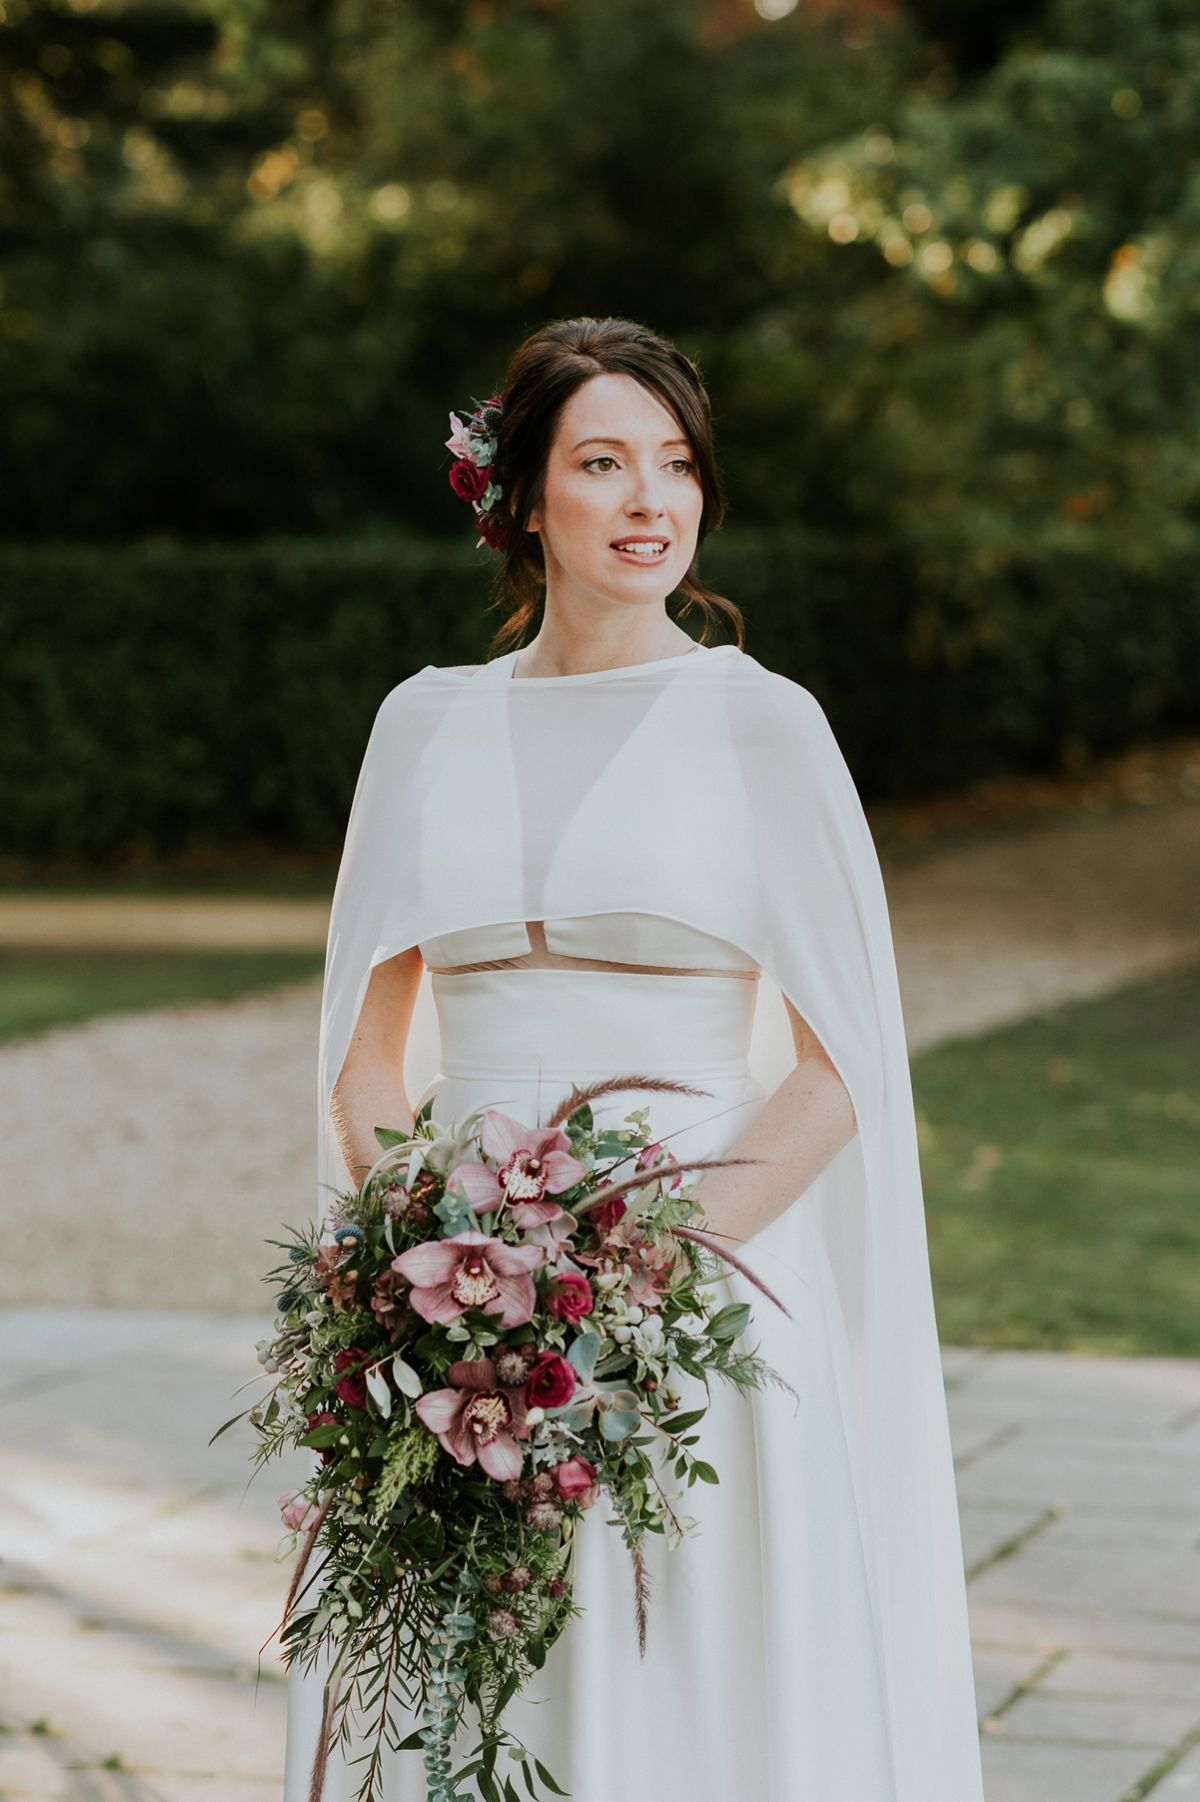 Jesus Peiro A Bridal Cape For A Victorian Botany Inspired